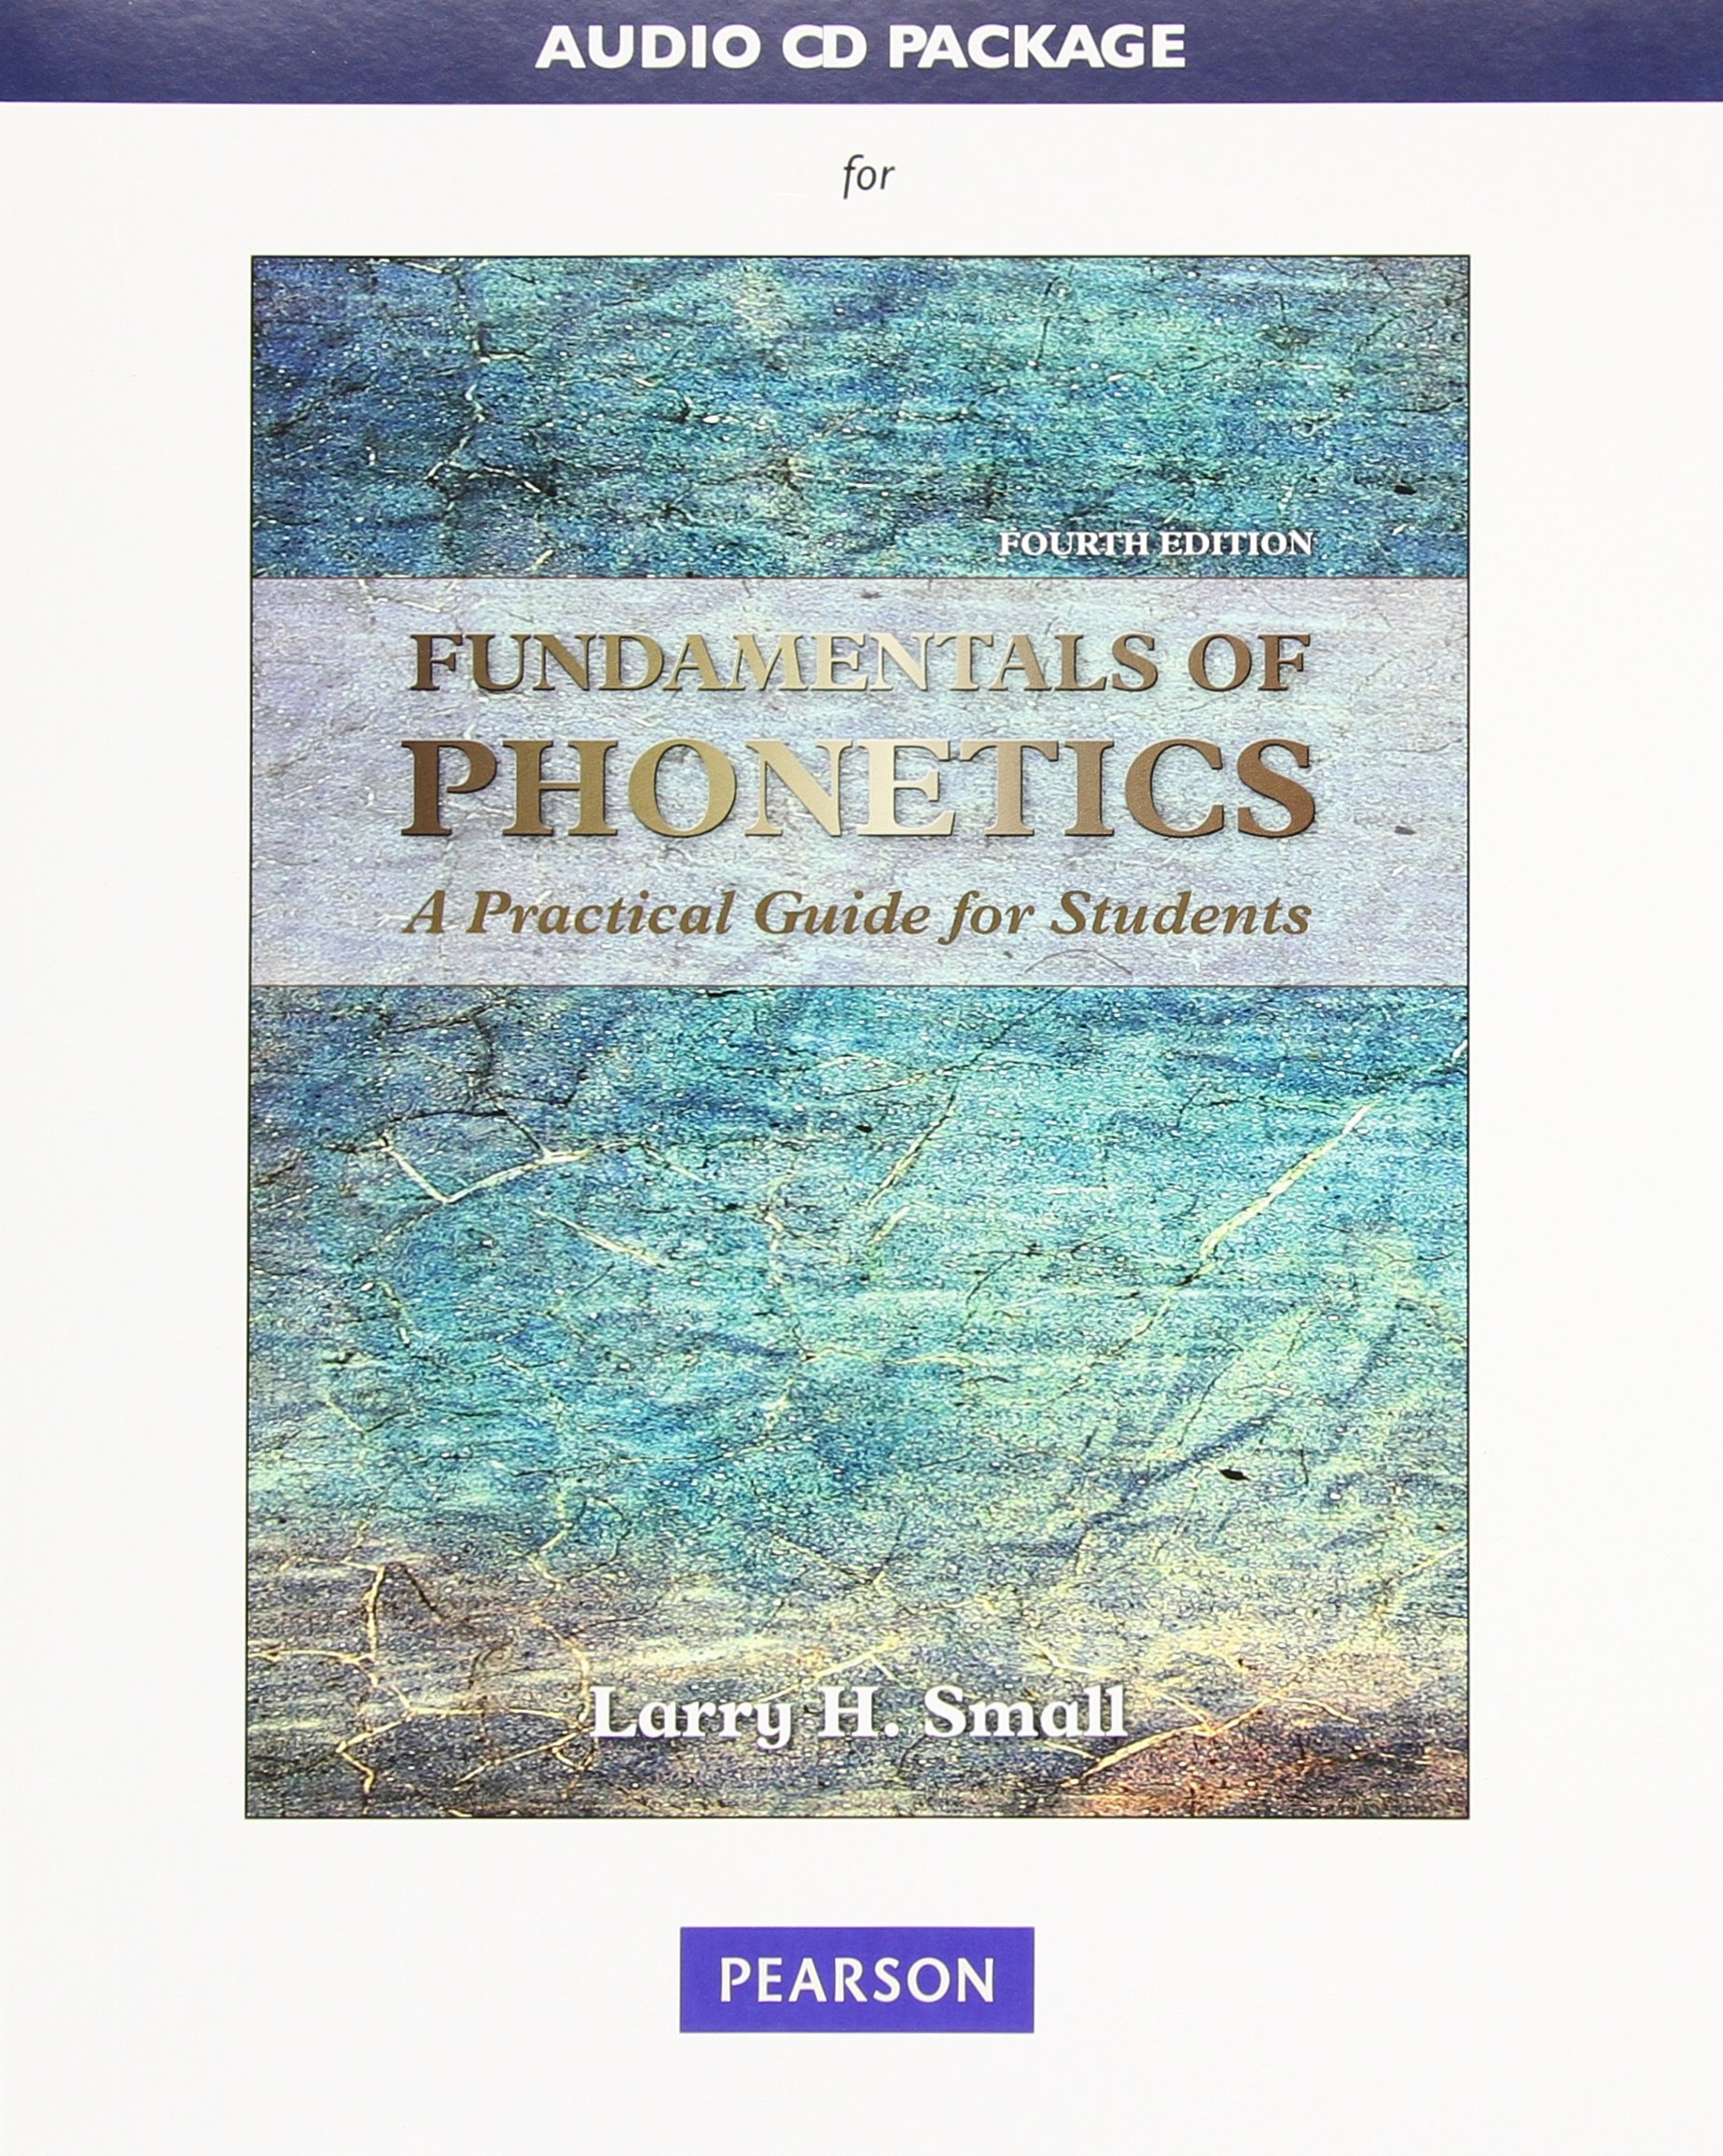 Audio CD Package for Fundamentals of Phonetics: A Practical Guide for Students by Pearson